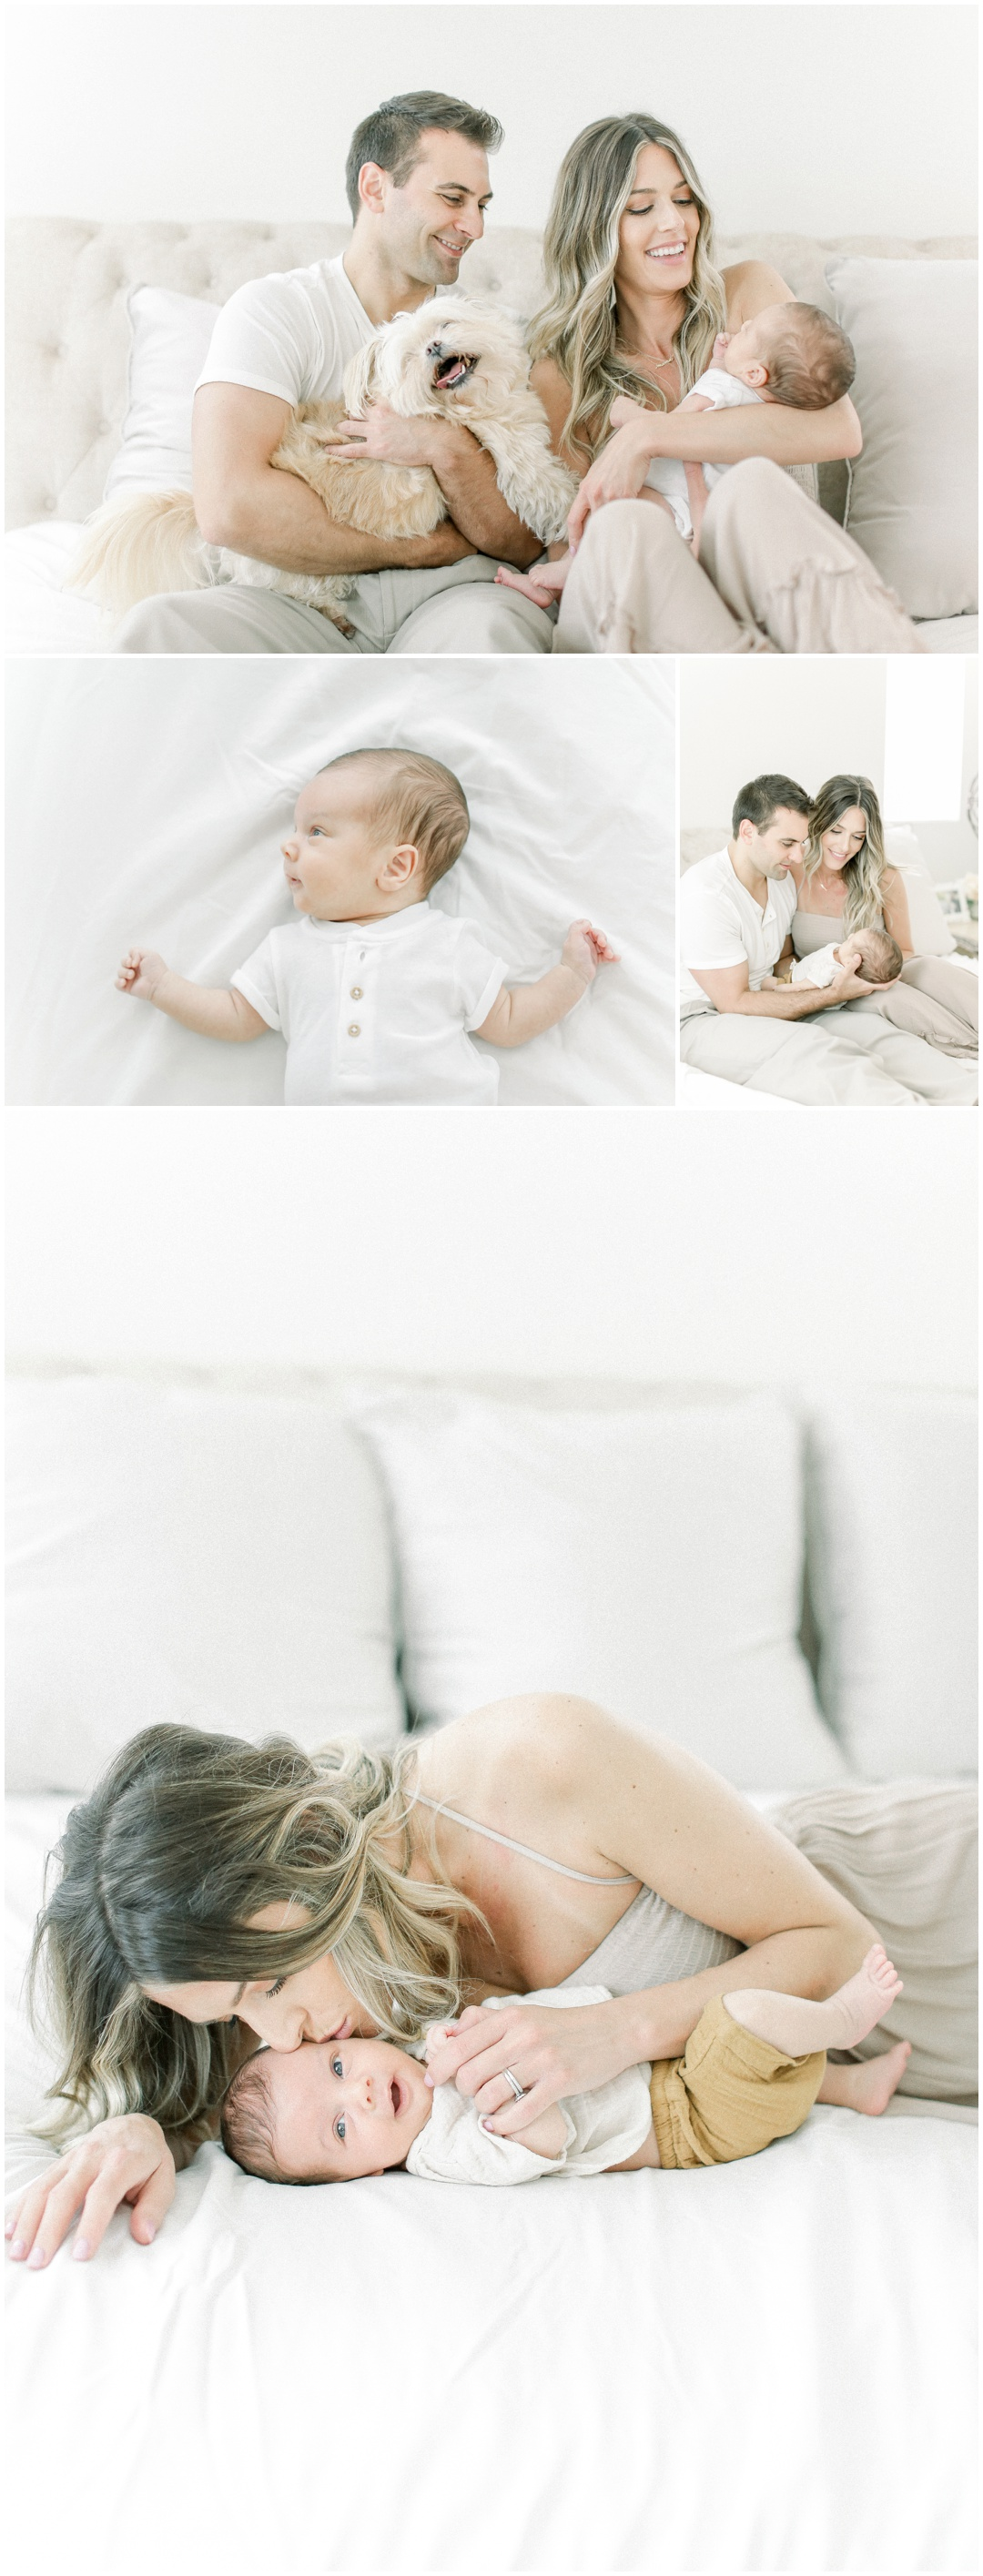 Newport_Beach_Newborn_Session_Orange_County_Family_Photographer_Danielle_Saluan__4304.jpg